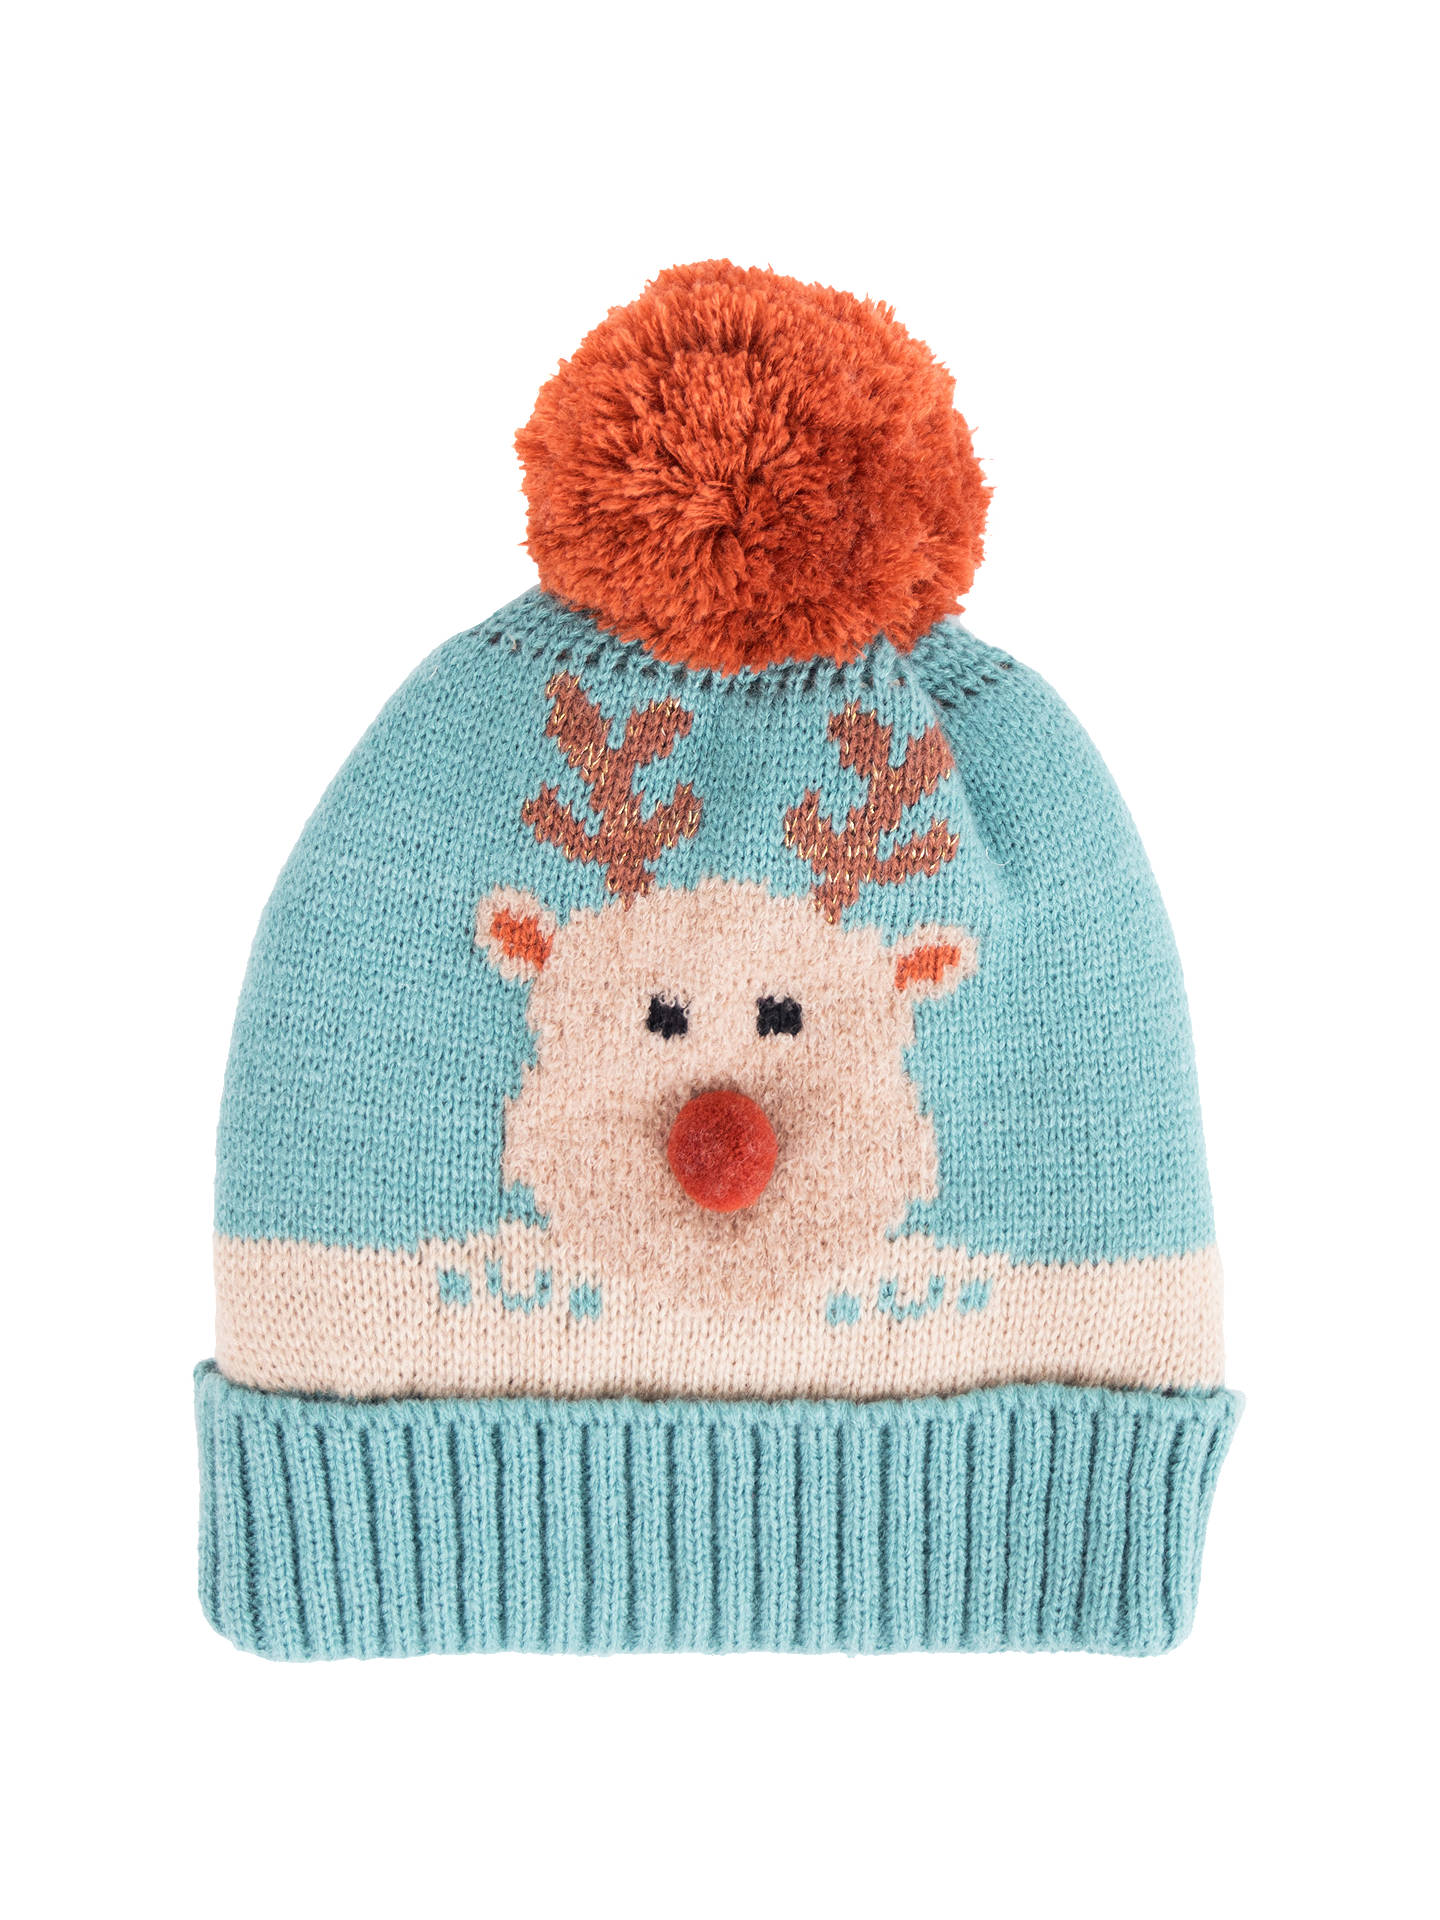 BuyPowder Rudolph Pom Pom Beanie Hat, Ice Online at johnlewis.com